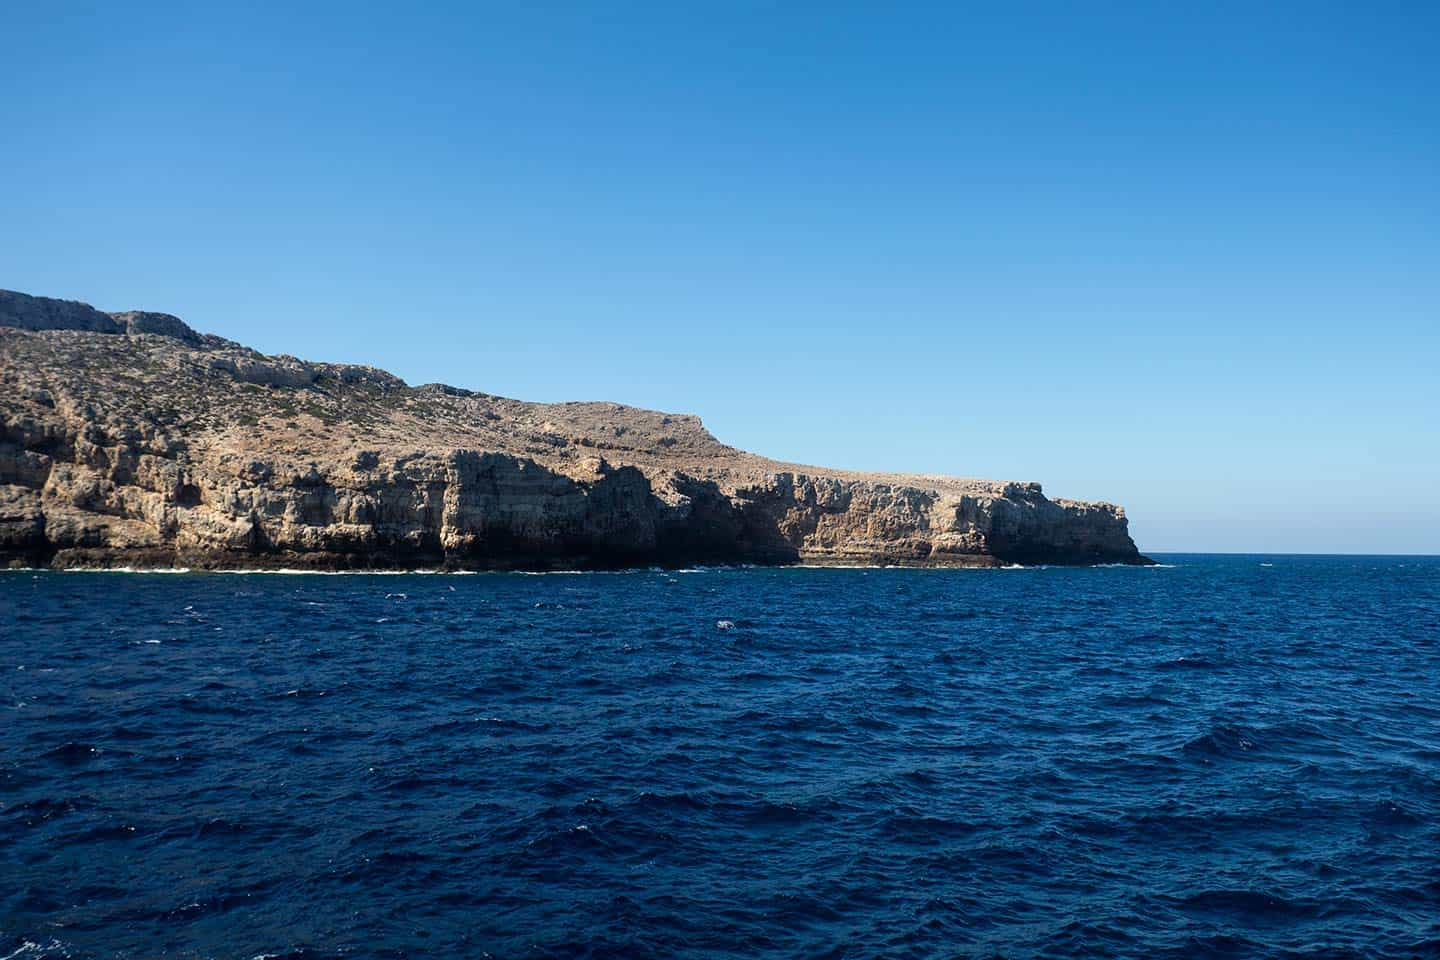 Image of the Crete coast seen from the Kissamos to Balos Beach ferry